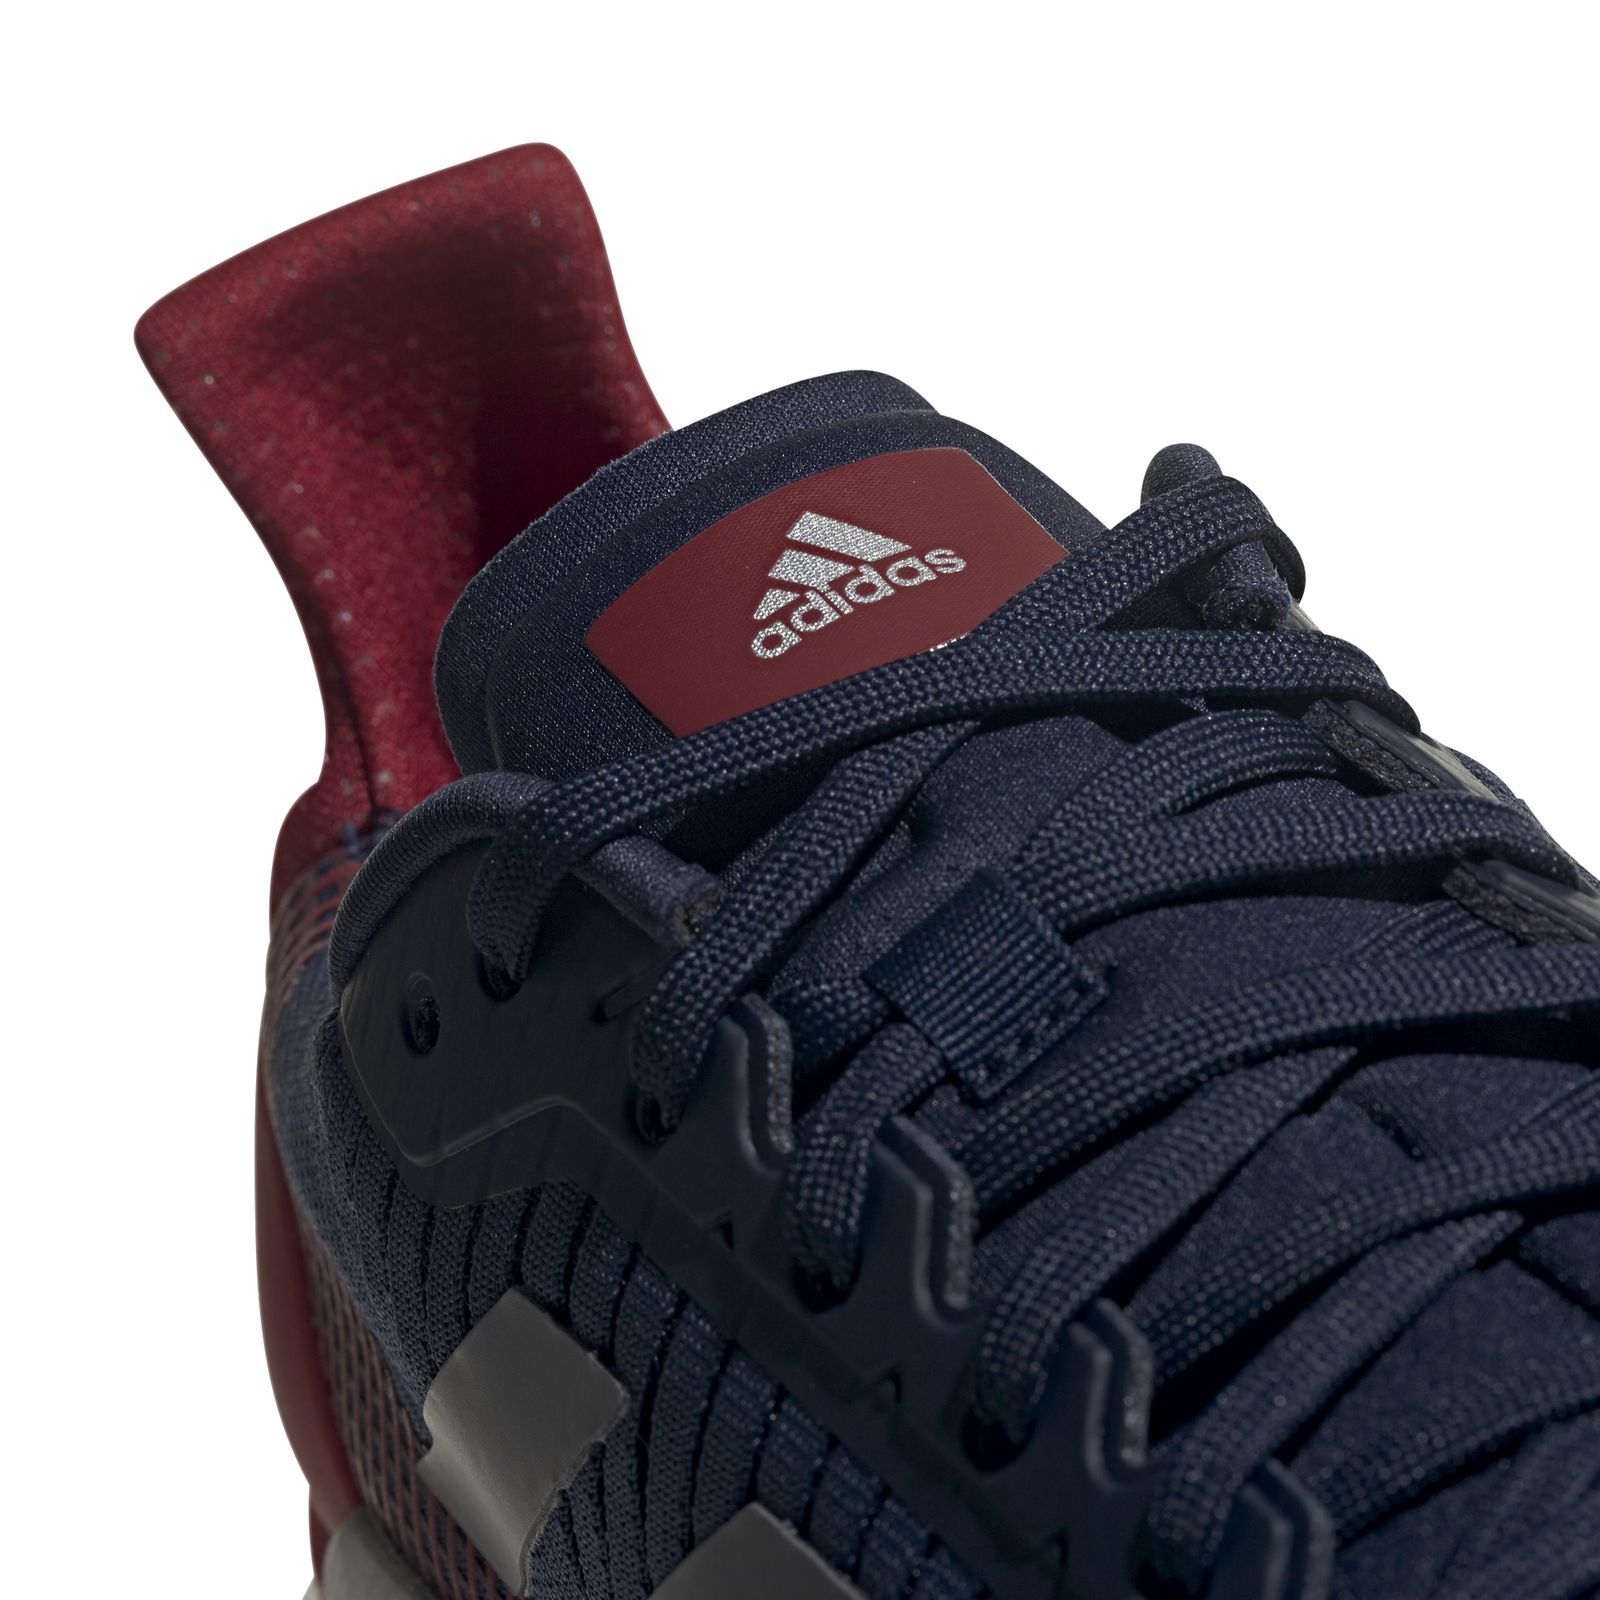 Details about Adidas Performance Mens Running Running Shoe Solar Glide 19 M Boost blue Red show original title